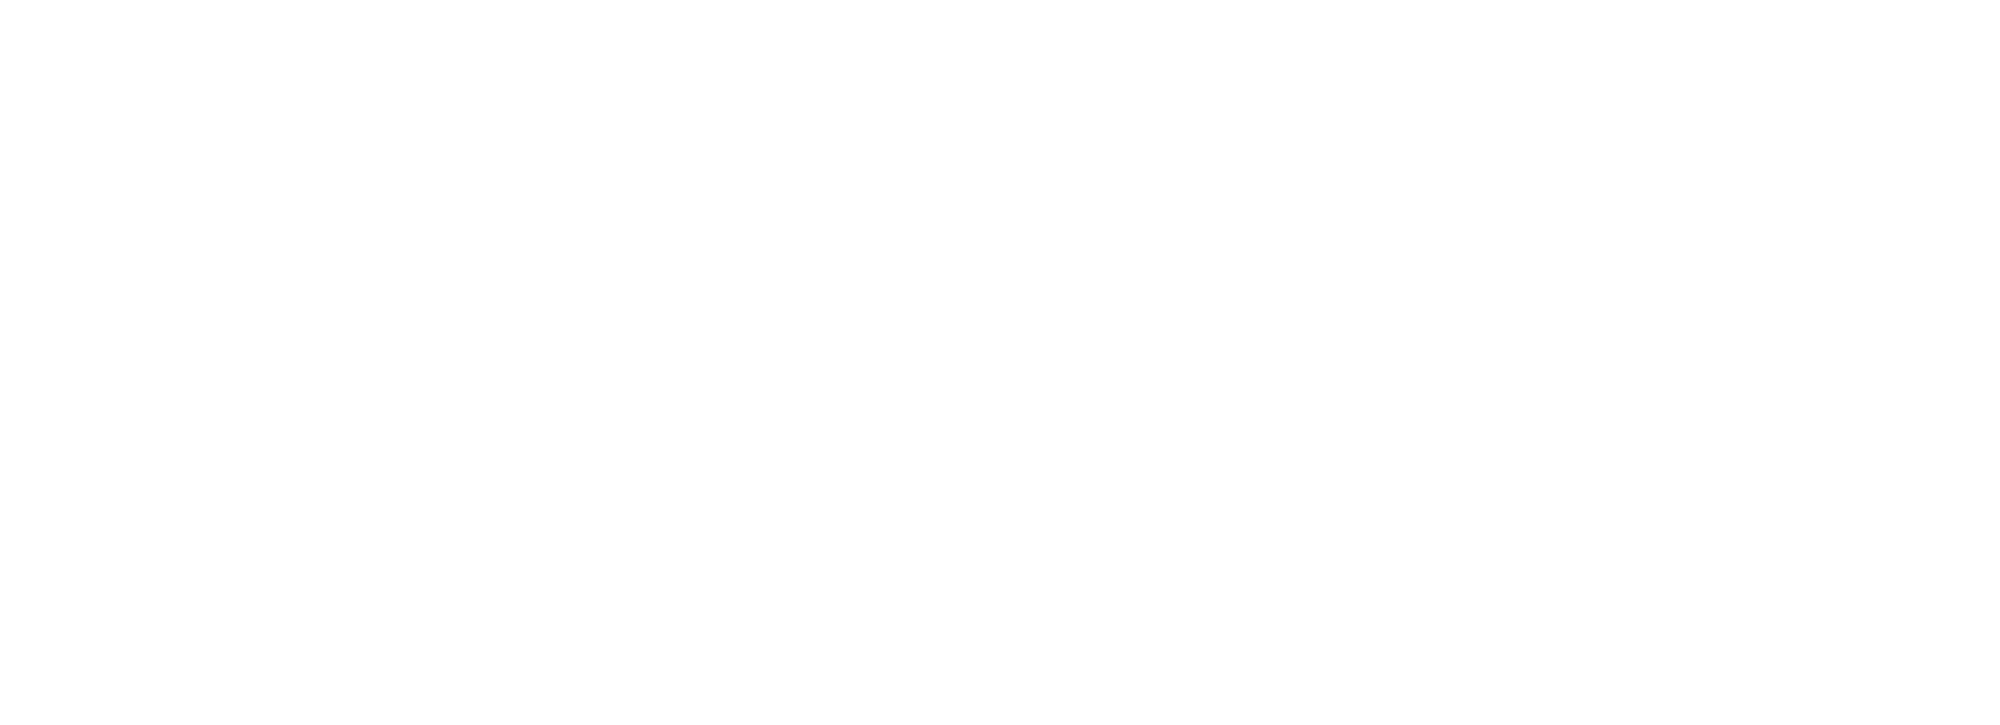 Record Store KILLACUTZ at Discogs